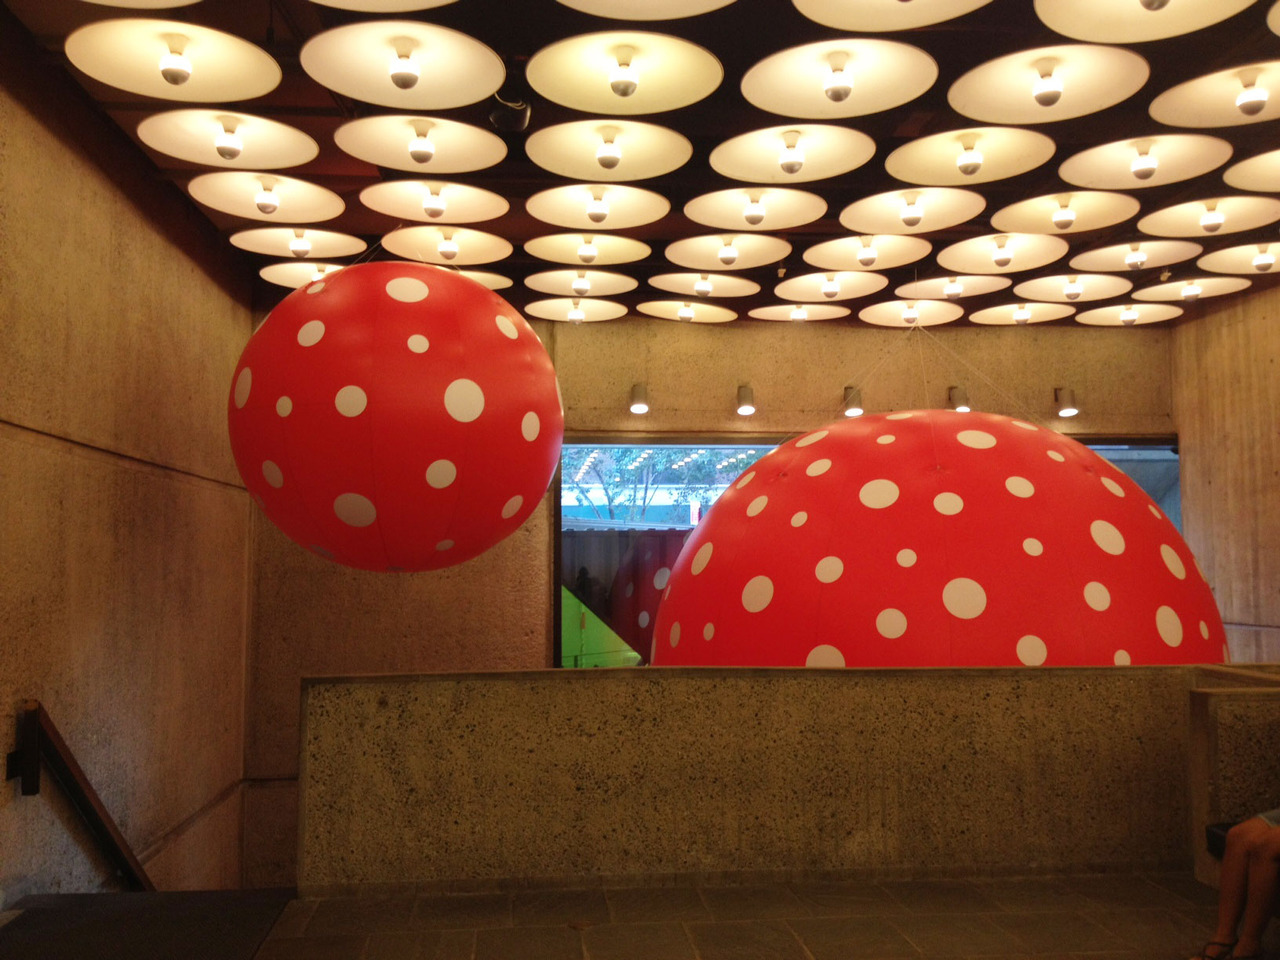 "whitneymuseum:  Yayoi Kusama sculptures in our lobby in advance of the opening of her retrospective this Thursday.   ""princess of polka dots"""